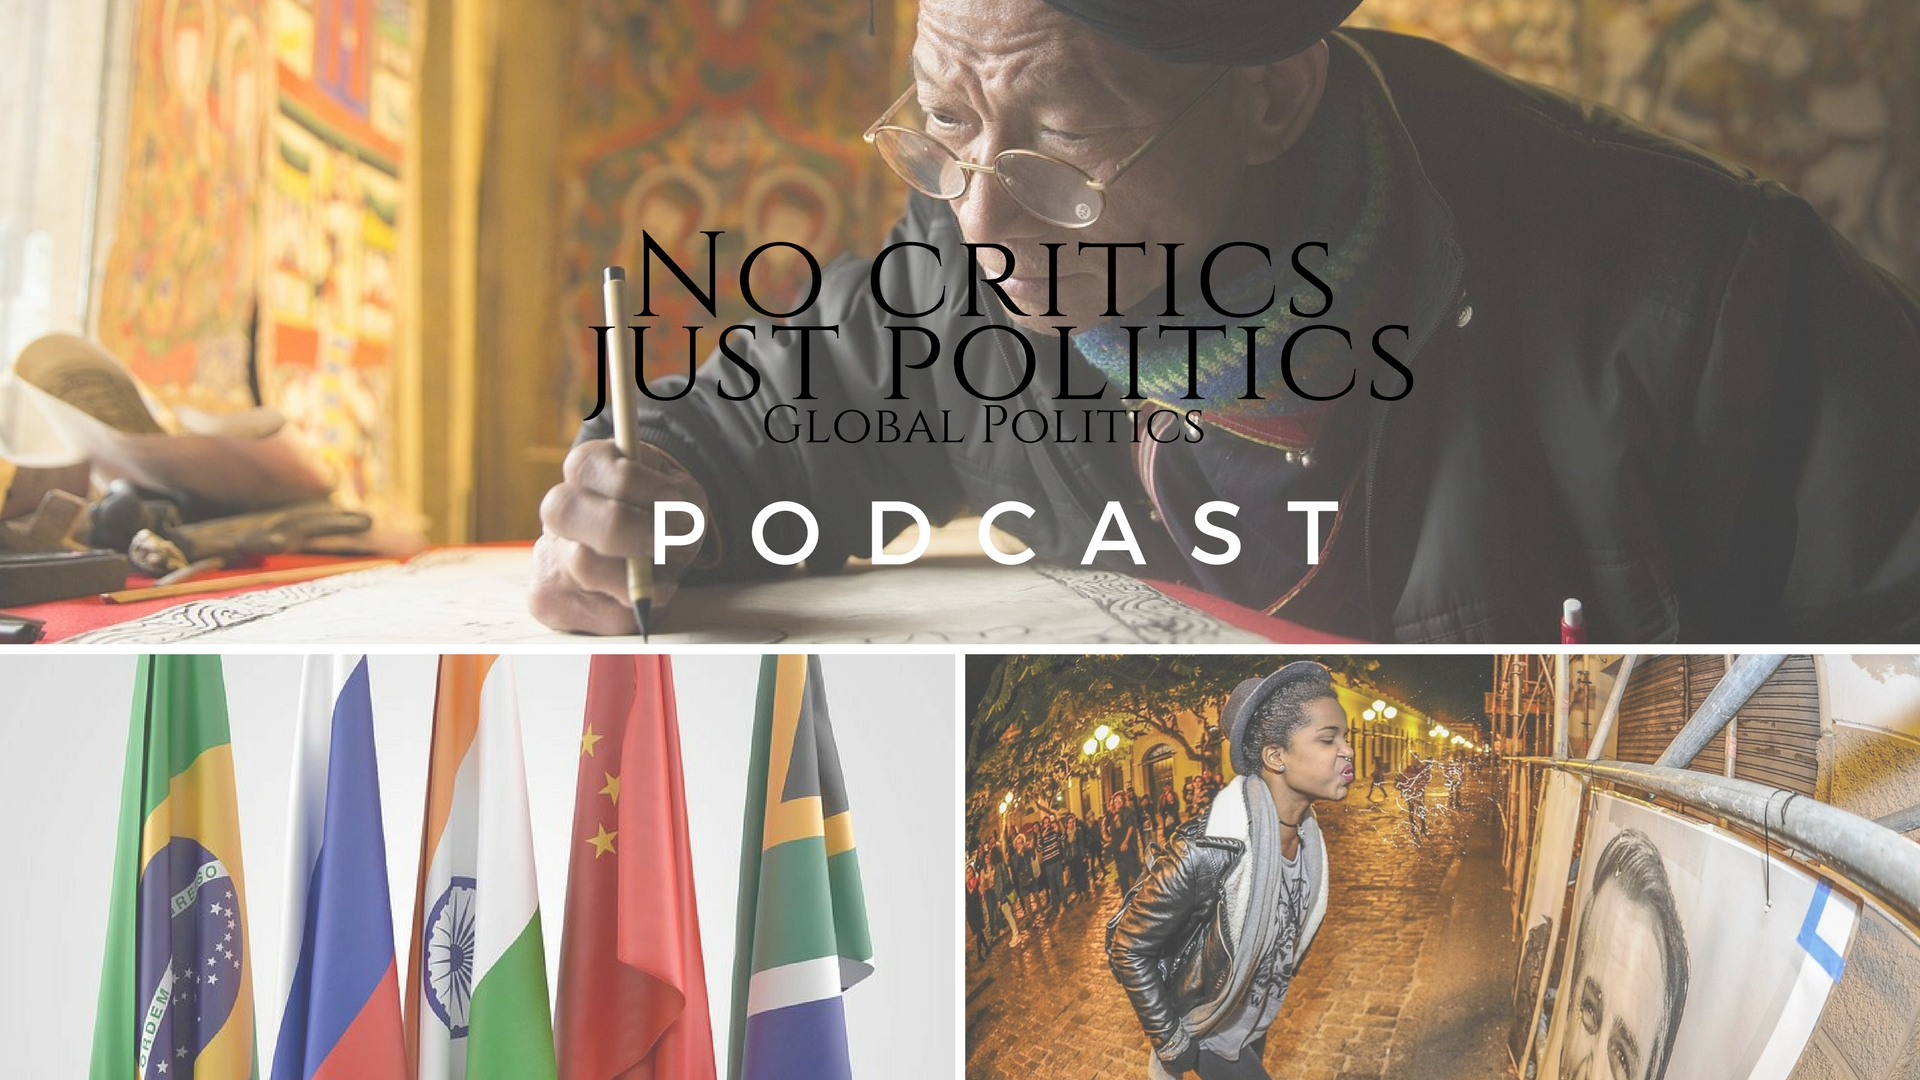 Check out the @No_Critics Just Politics #Podcast Episode 8 w/ #SharonElaineHill on #NoCriticsJustPolitics